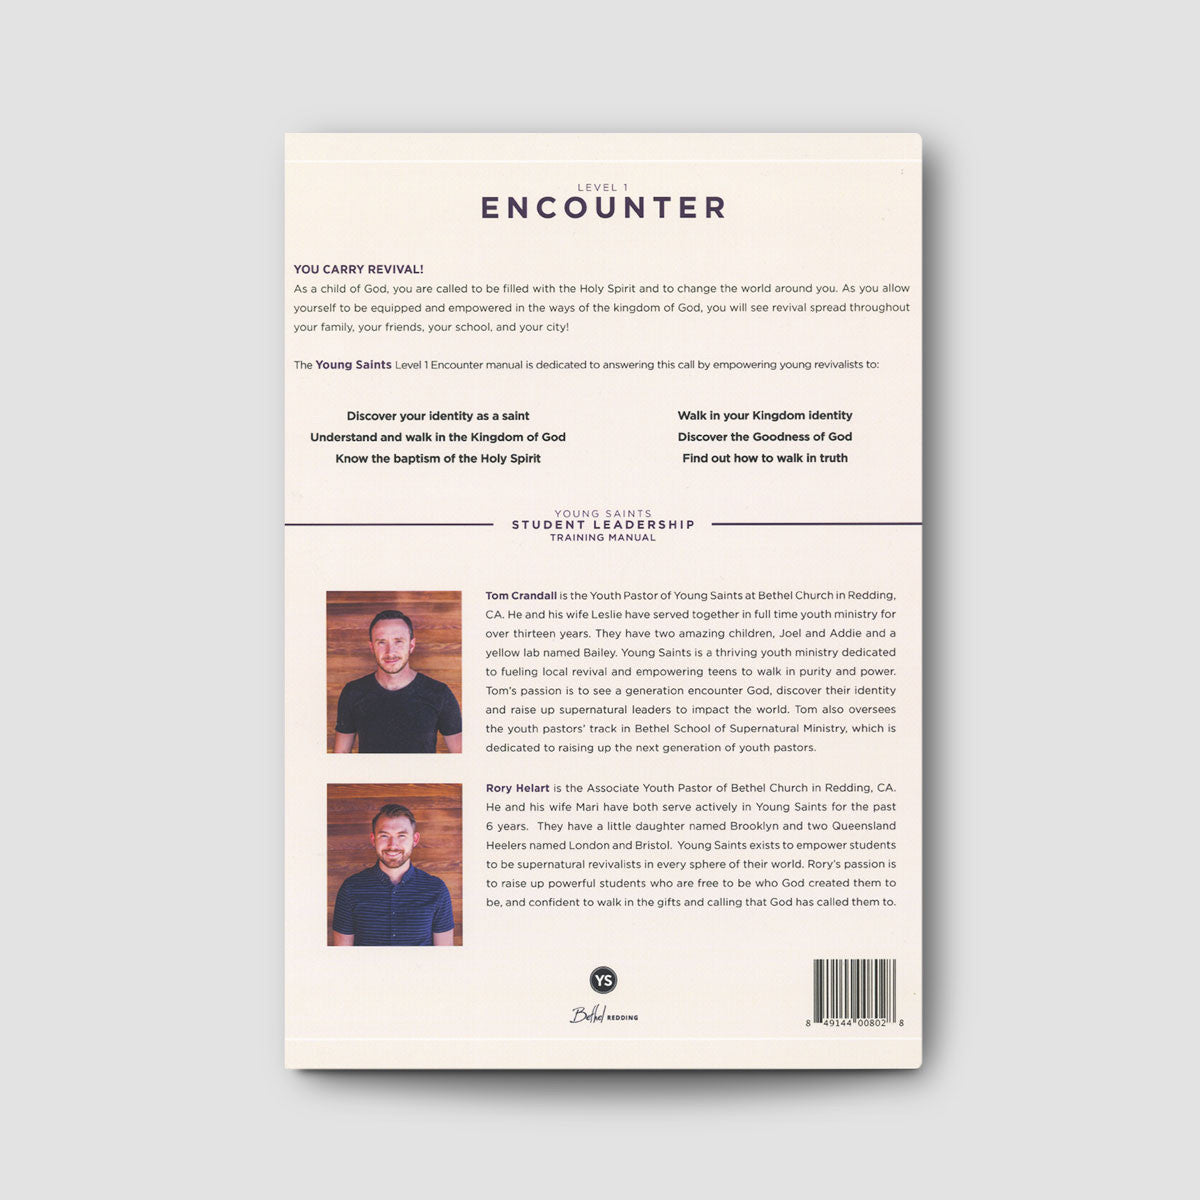 Student Leadership Team (SLT) Manual Level 1: Encounter